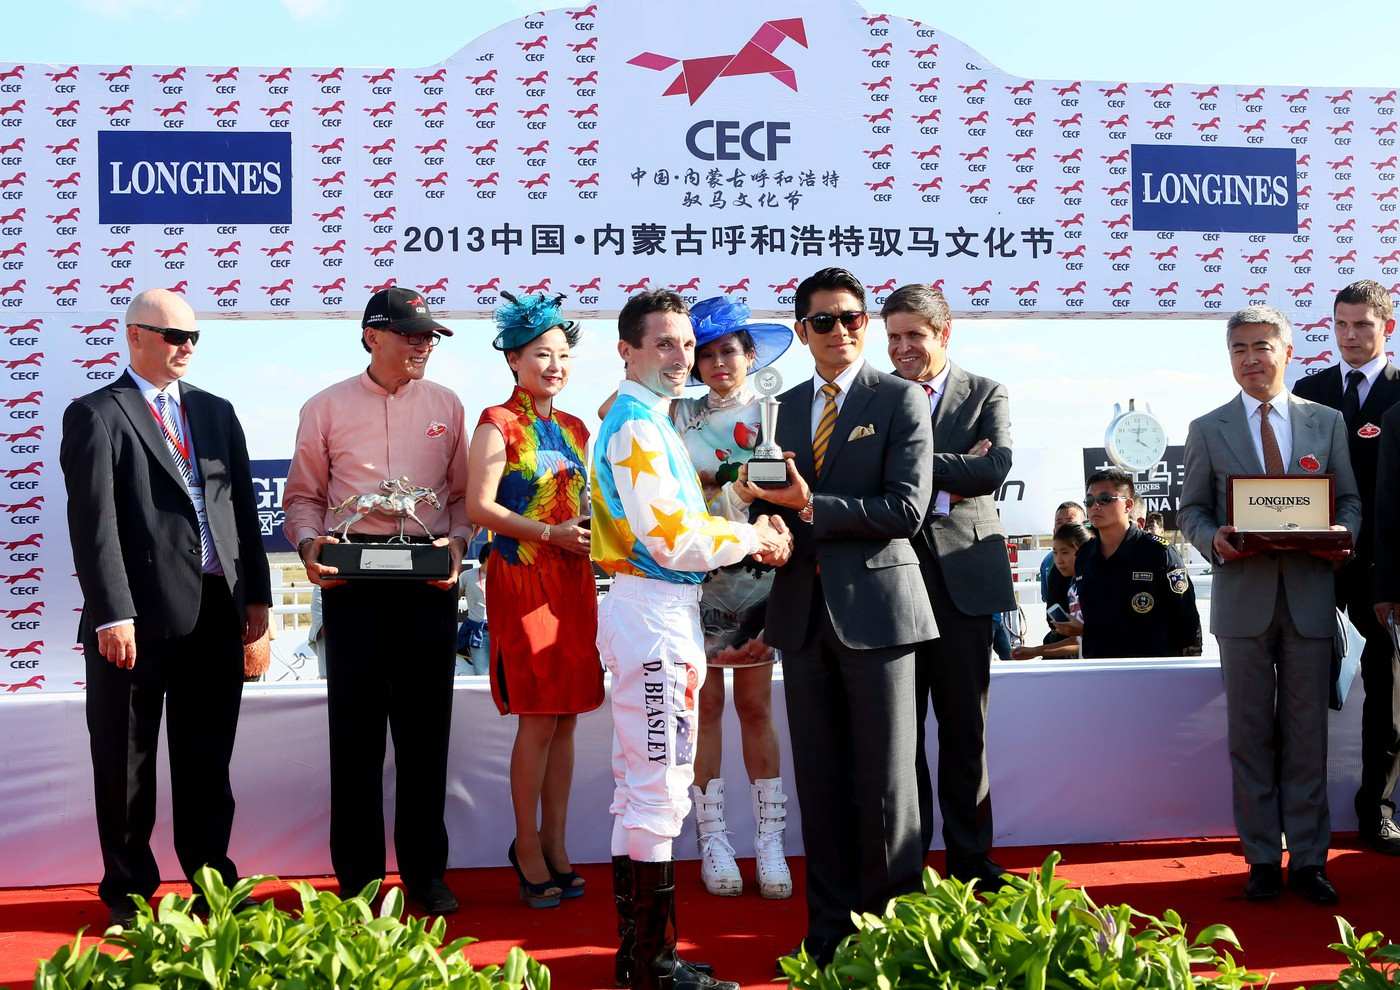 Longines Flat Racing Event: Longines at the China Equine Cultural Festival 3